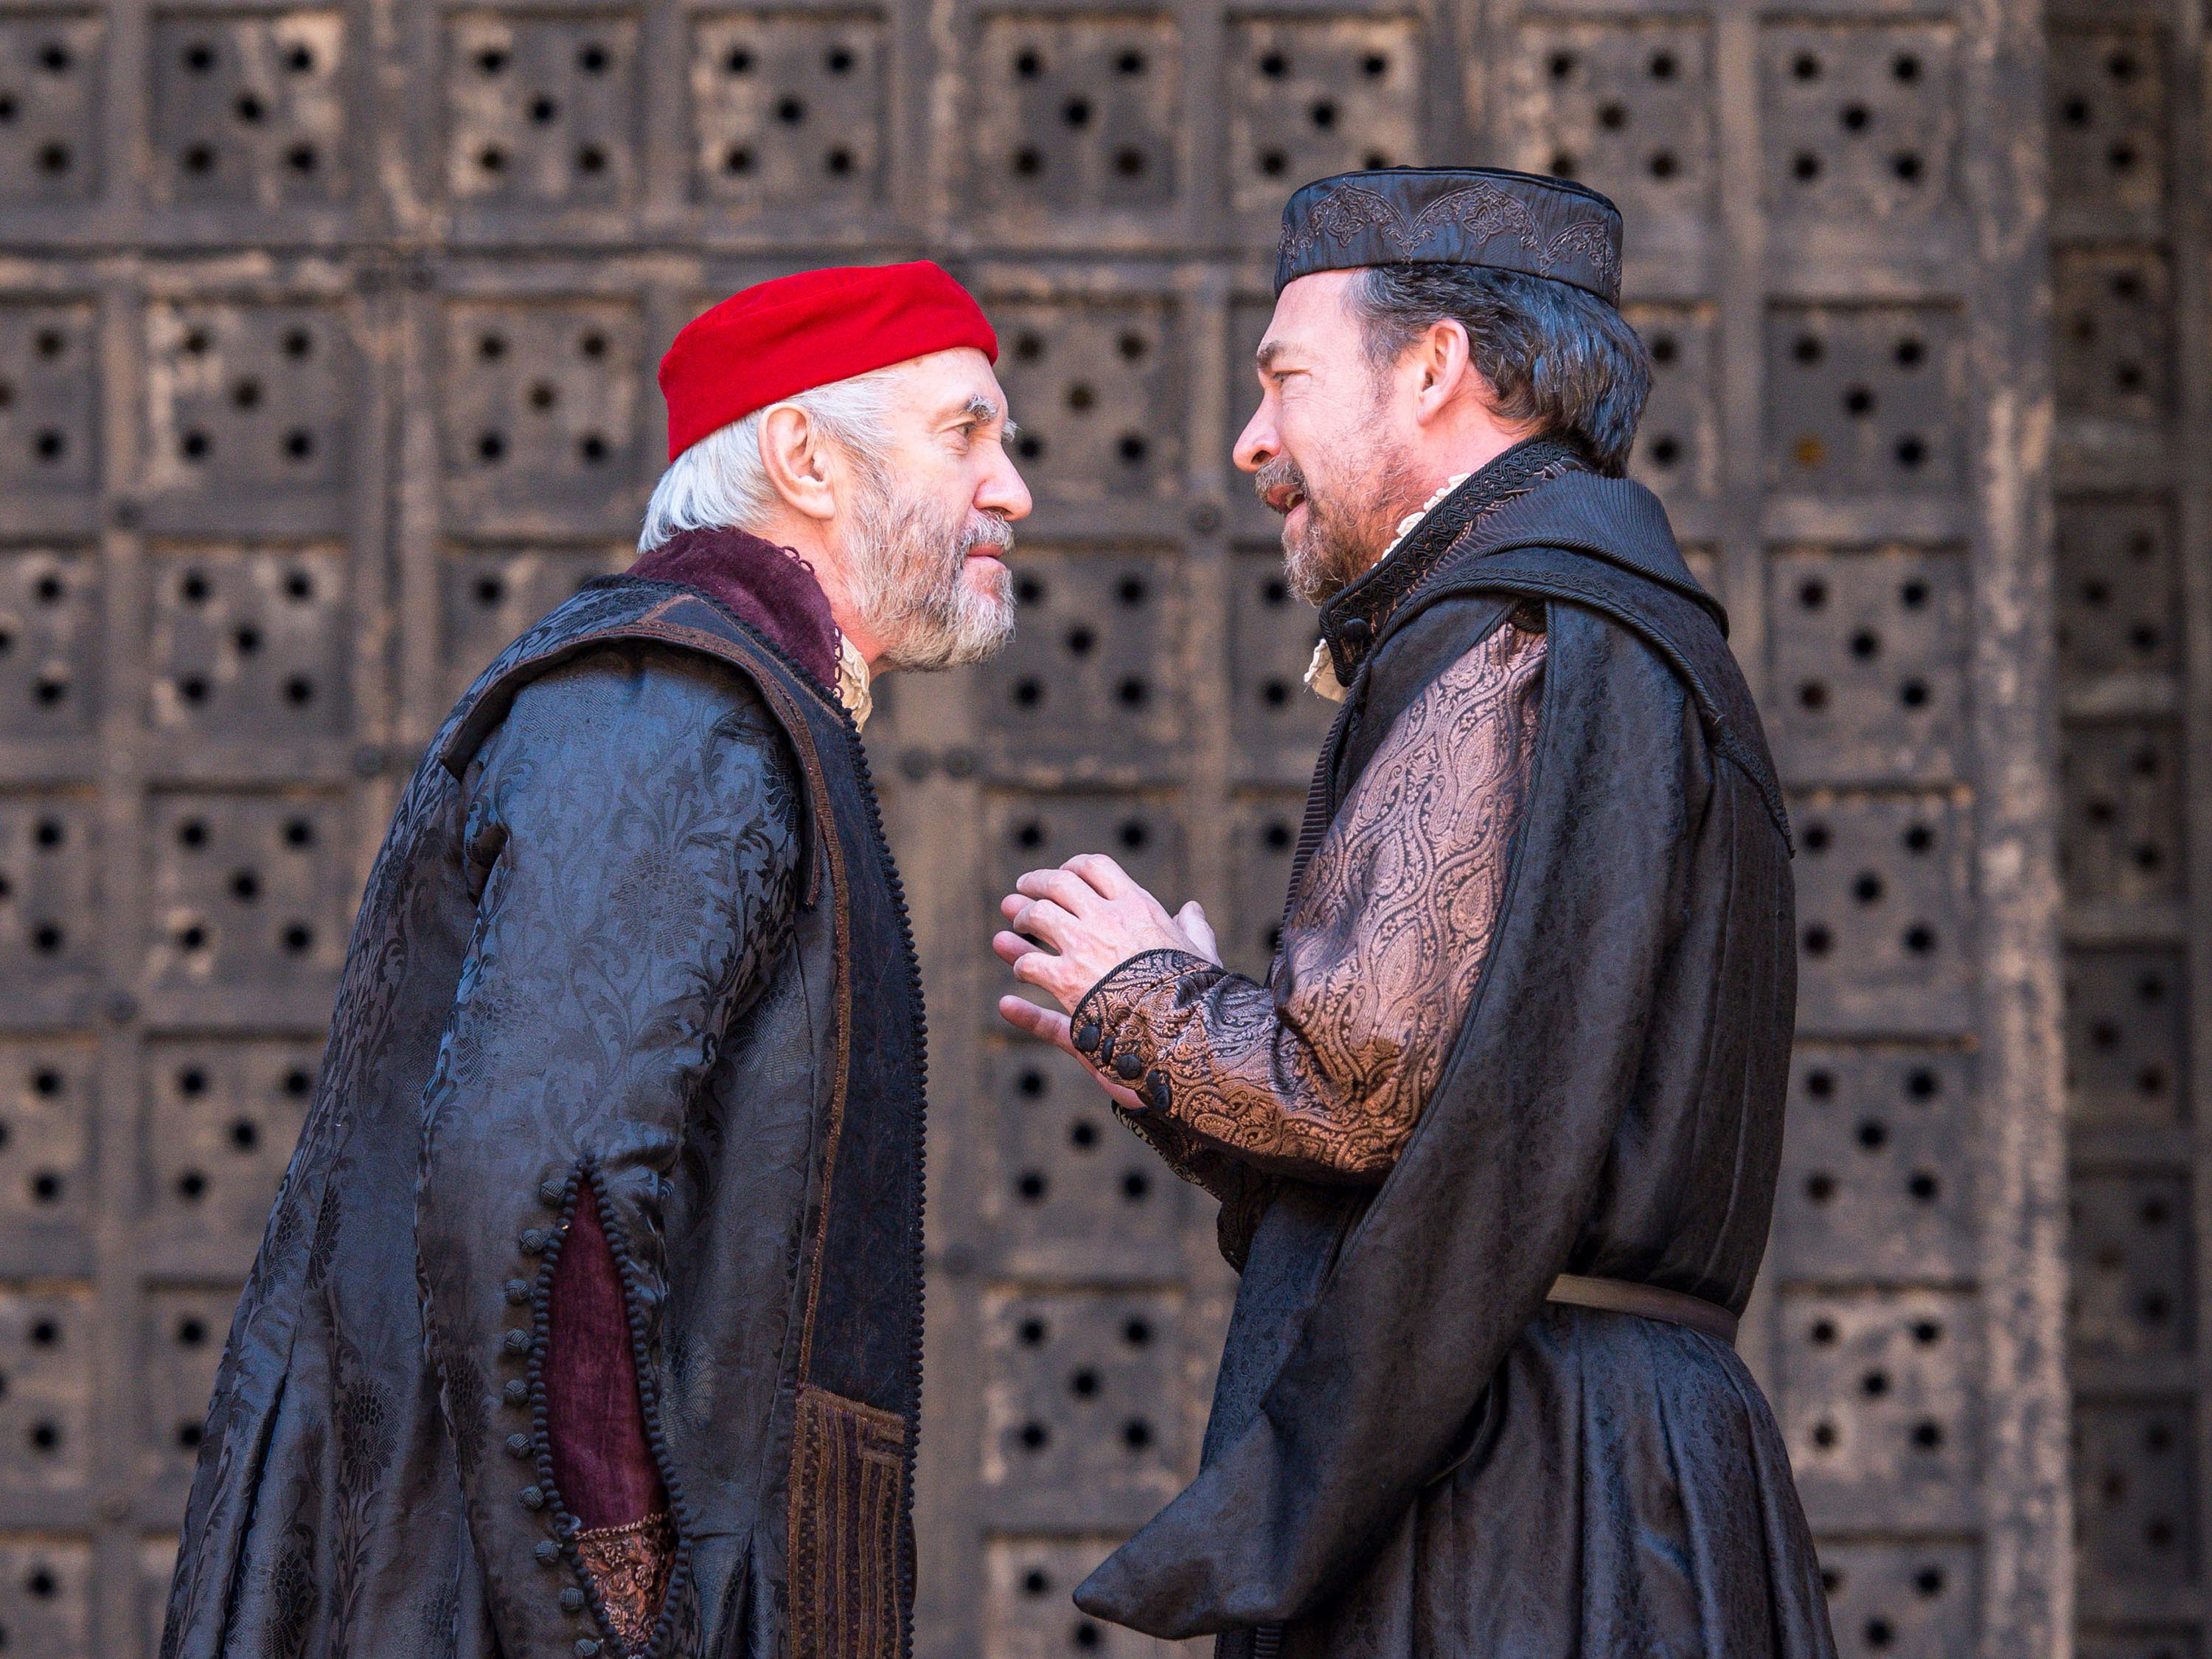 merchant of venice antonio and shylock relationship advice